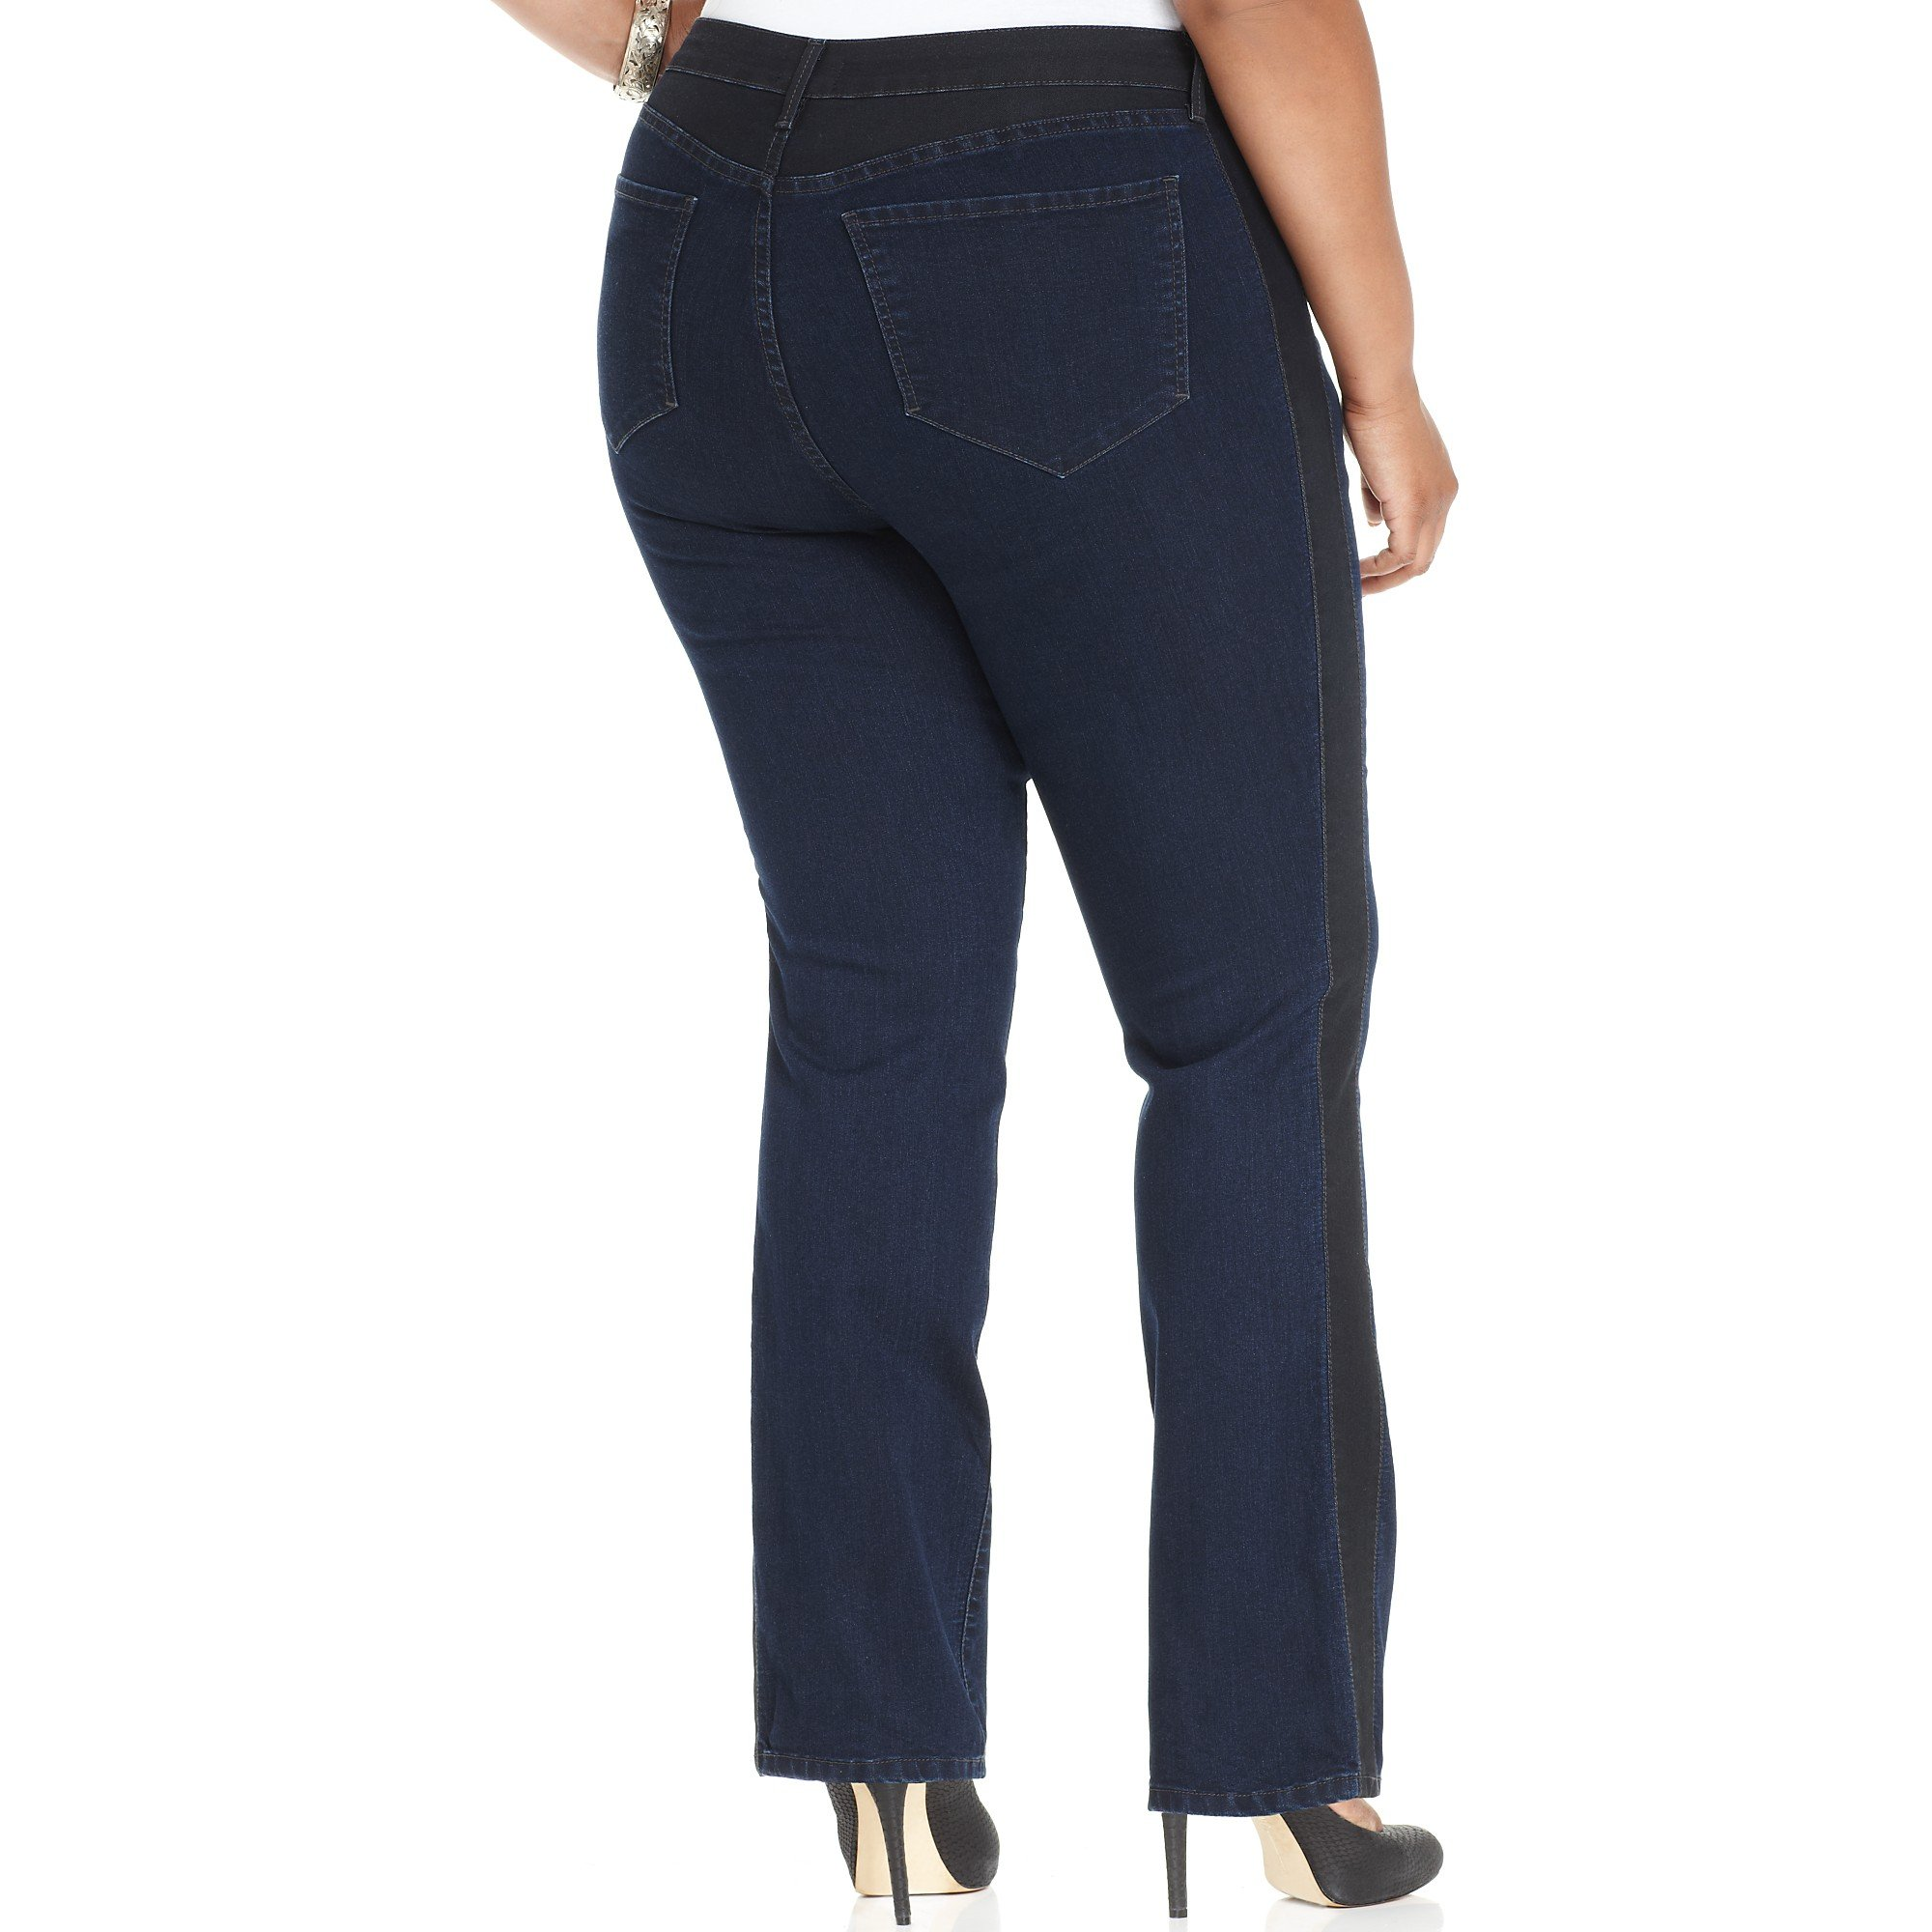 Not Your Daughters Jeans Plus Size Sale - Most Popular Jeans 2017